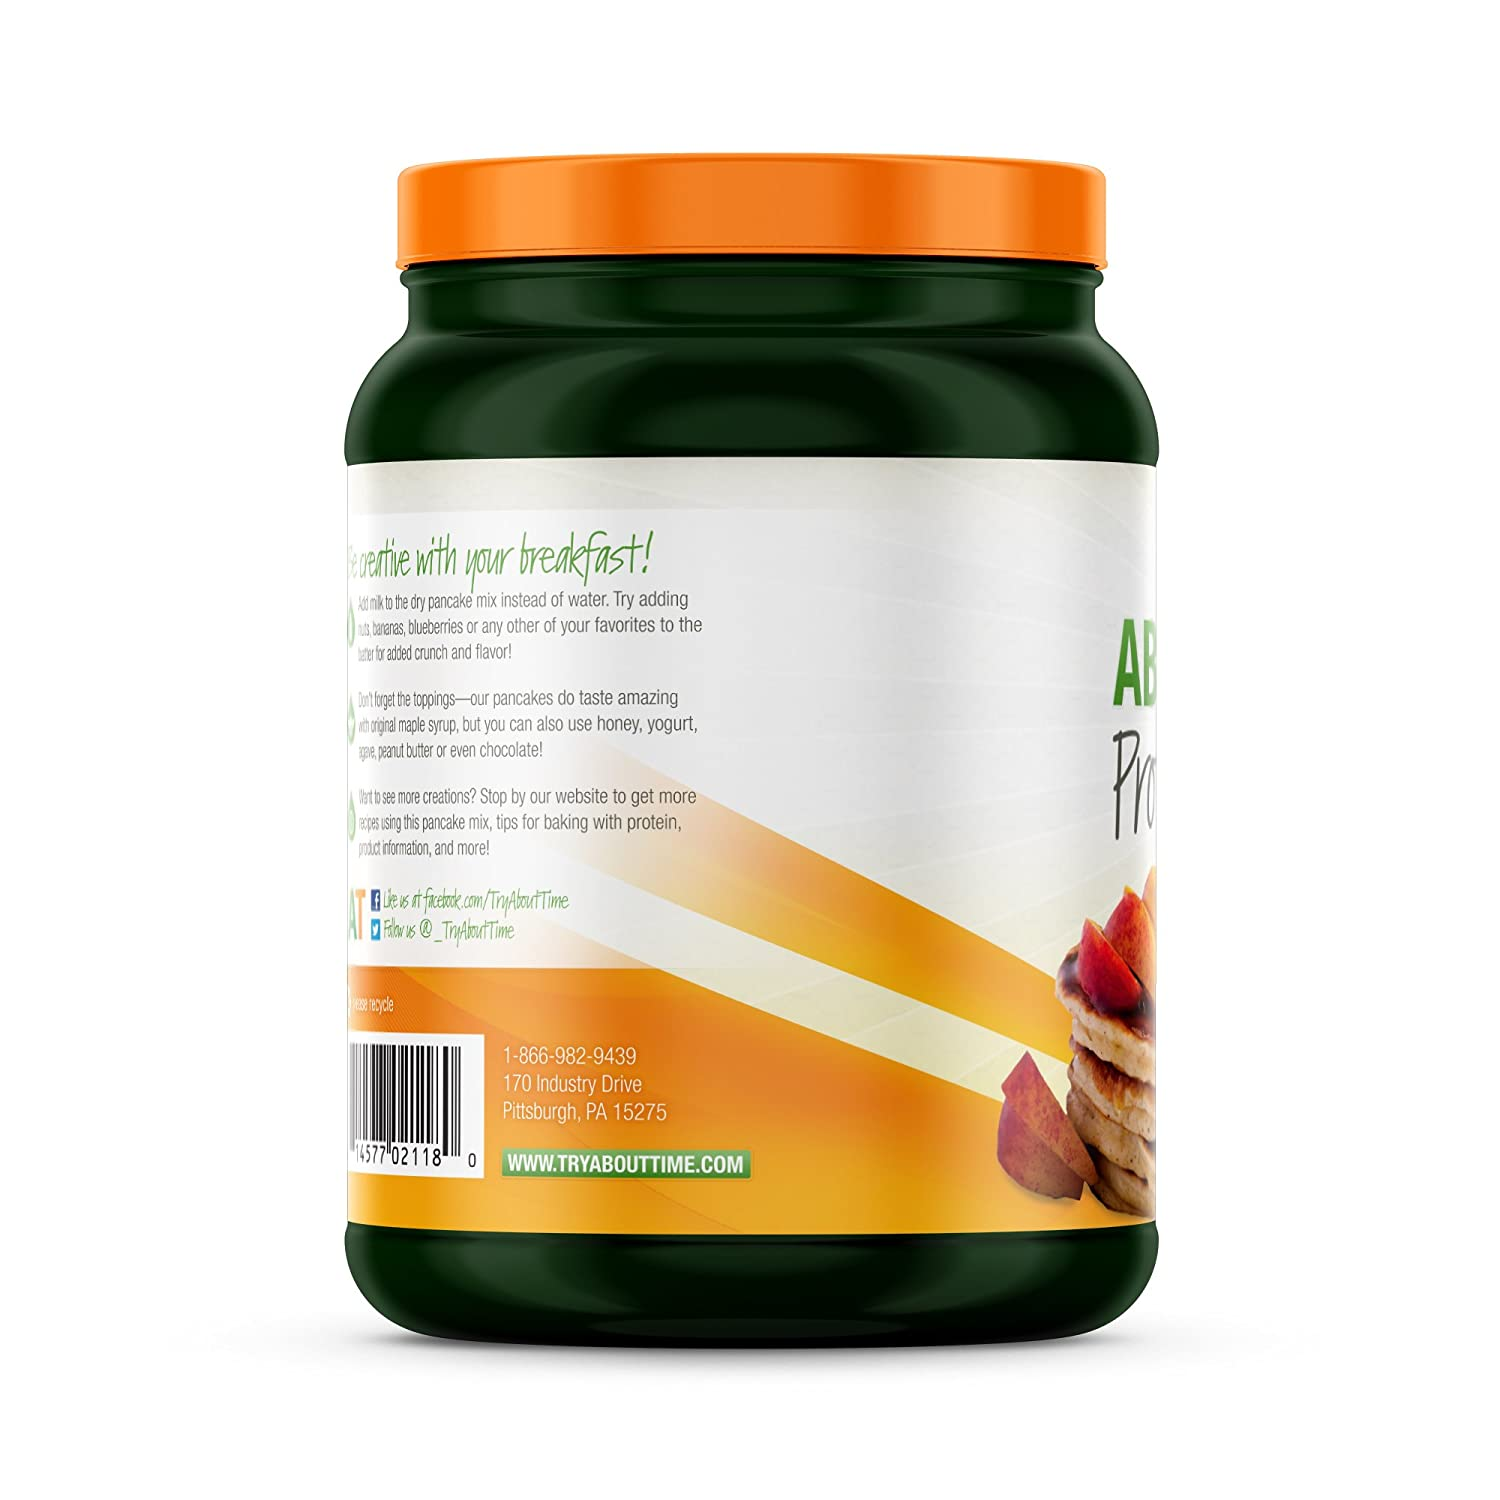 Amazon.com : About Time Protein Pancake Mix - Whey Protein Isolate, 21g of Protein Per Serving (Peach - 1.5 Pounds) : Grocery & Gourmet Food